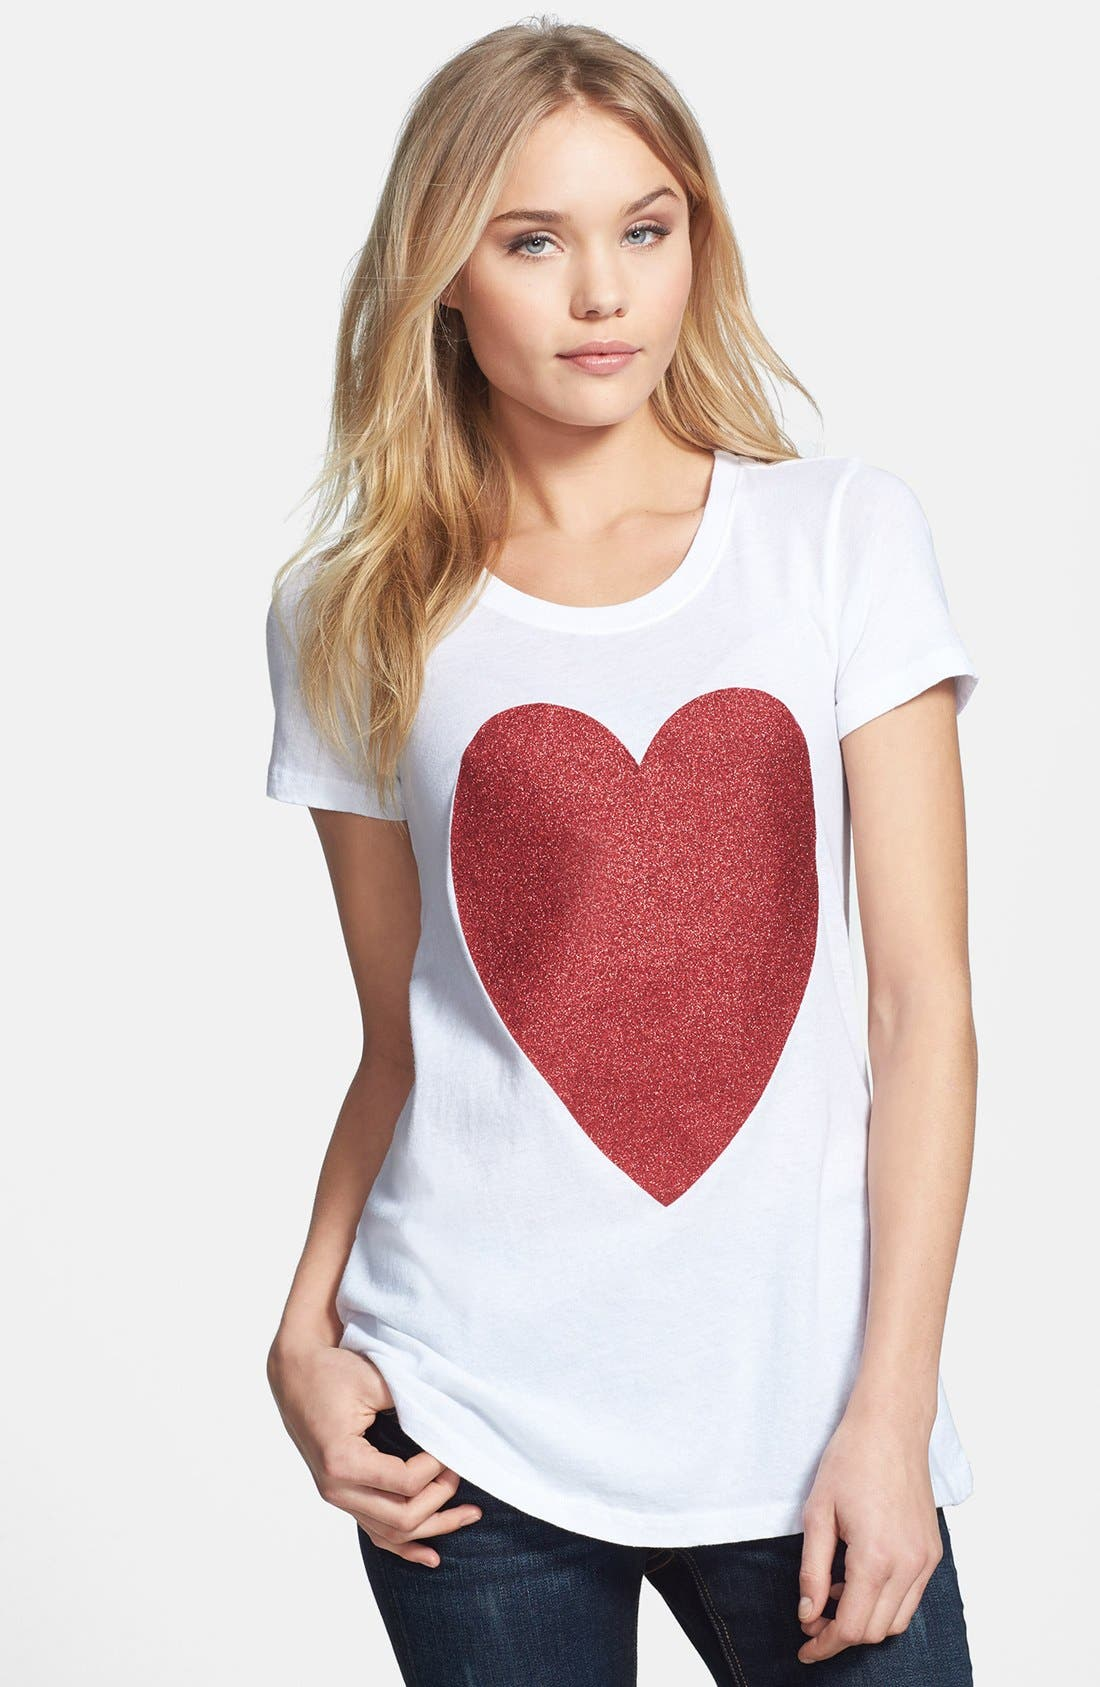 Alternate Image 1 Selected - Wildfox 'Sparkle Heart' Crewneck Cotton Tee (Special Purchase)